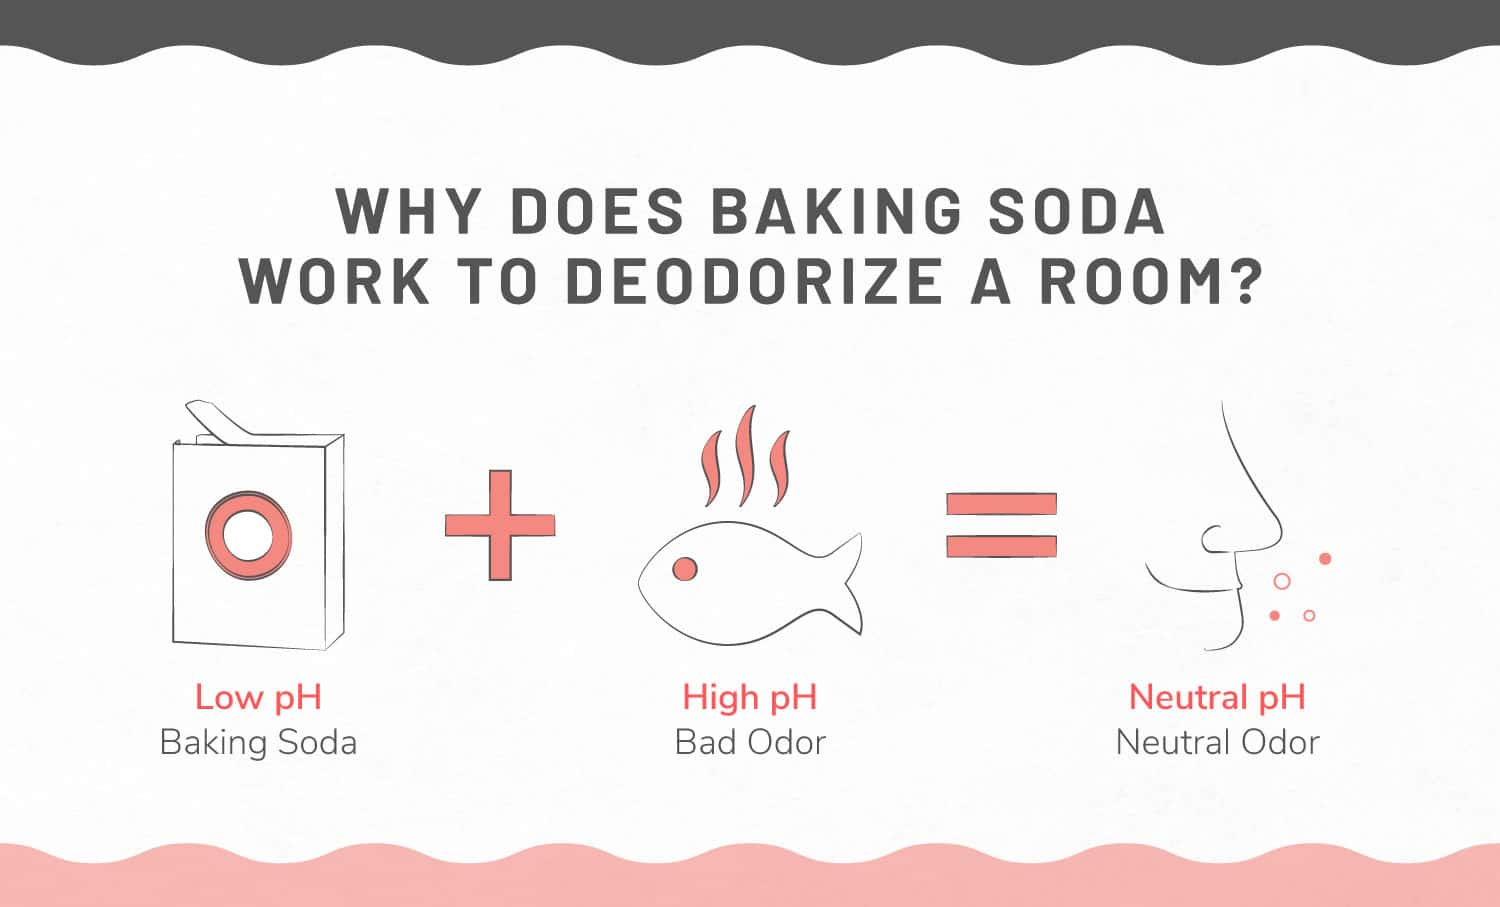 Illustration of baking soda to deodorize a room